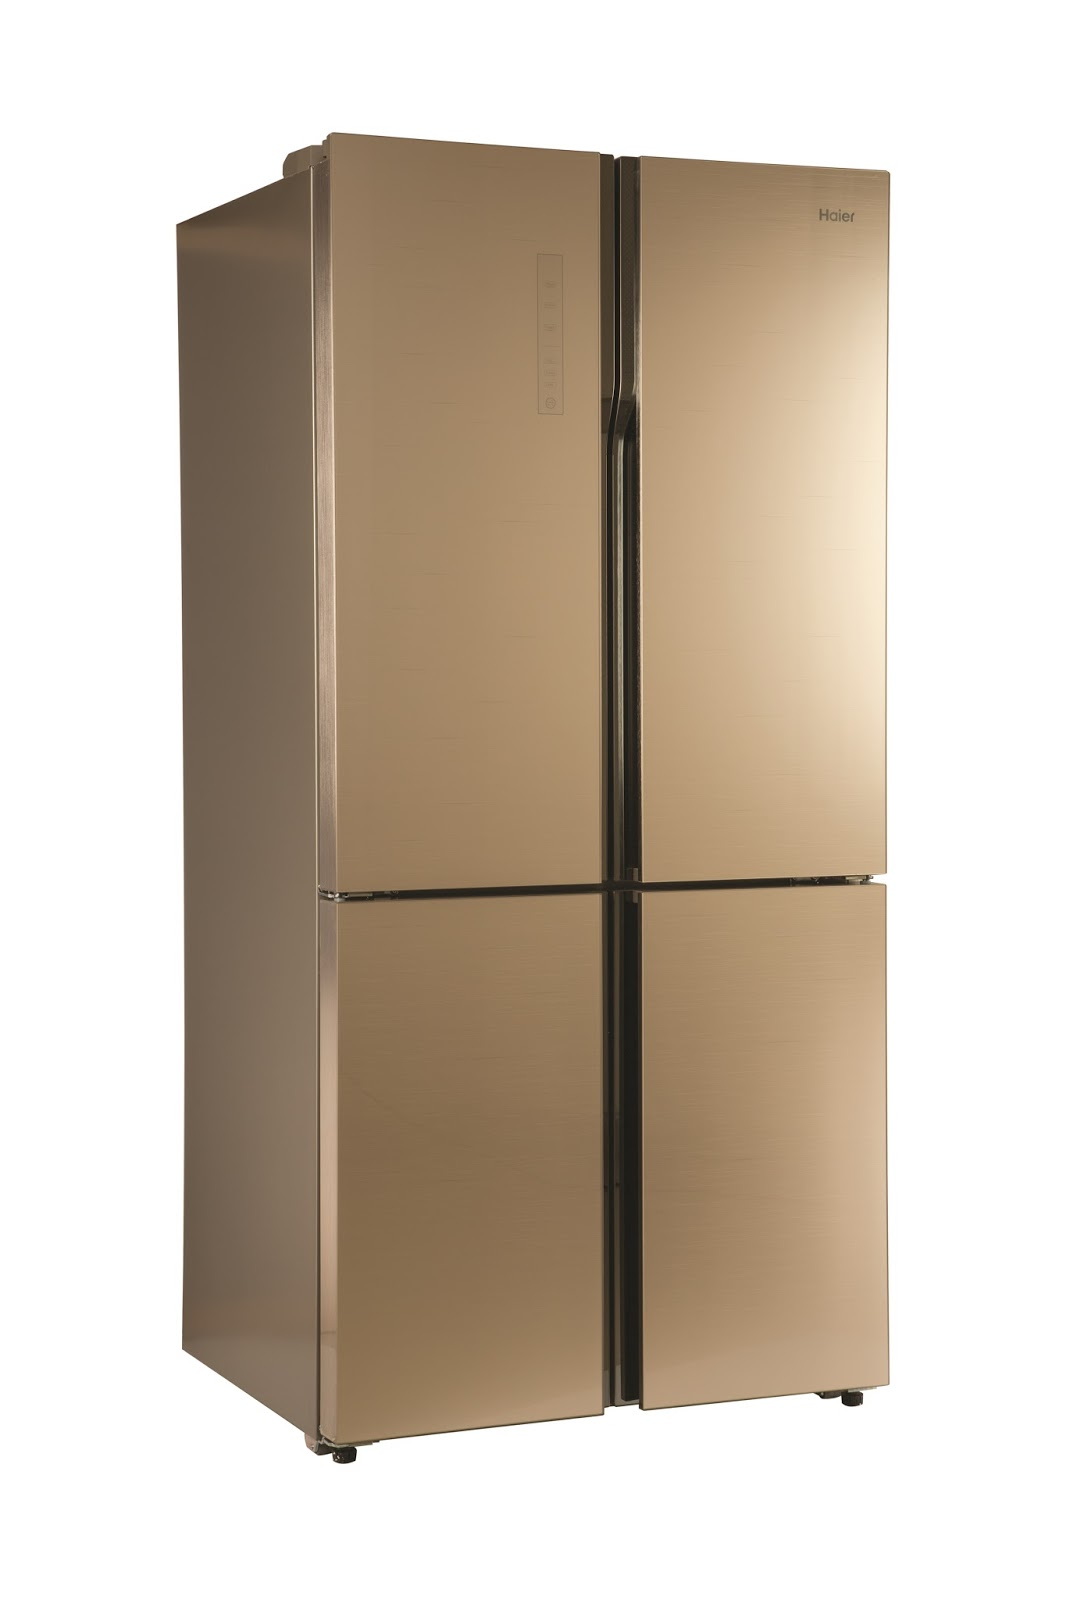 Haier S New Golden Glass Finish 712 Litre 4 Door Refrigerator Launched In India